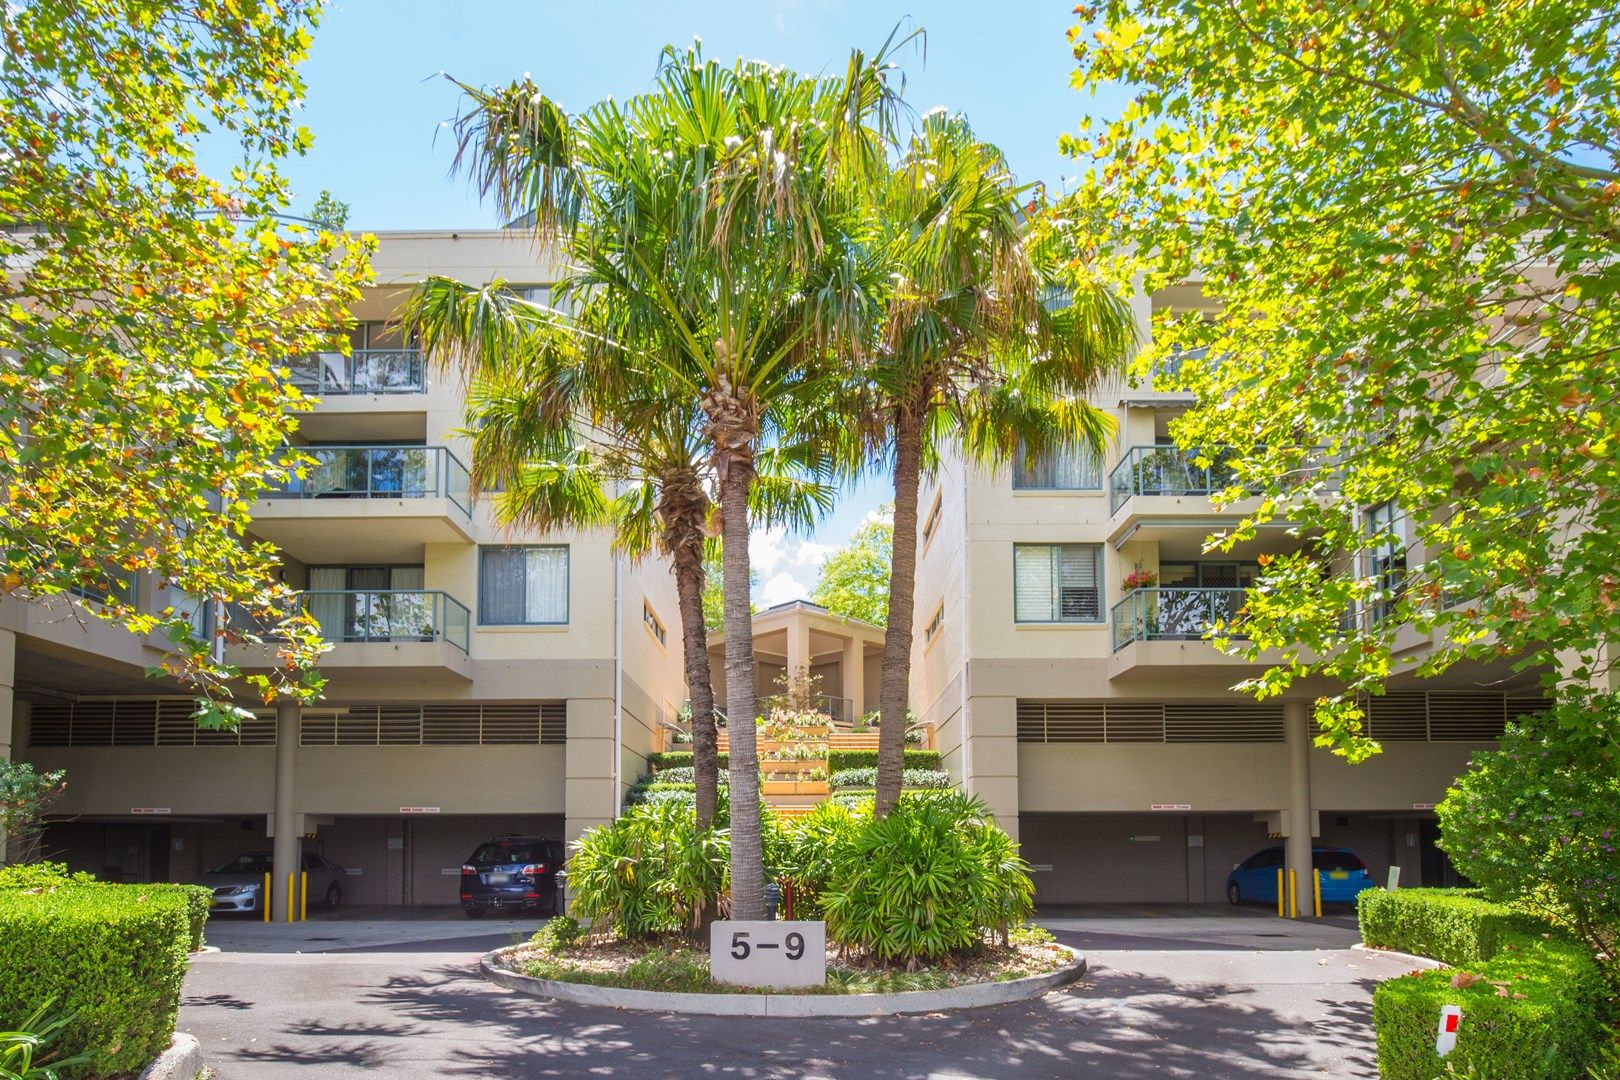 105/5-9 Everton Street, Pymble NSW 2073, Image 0